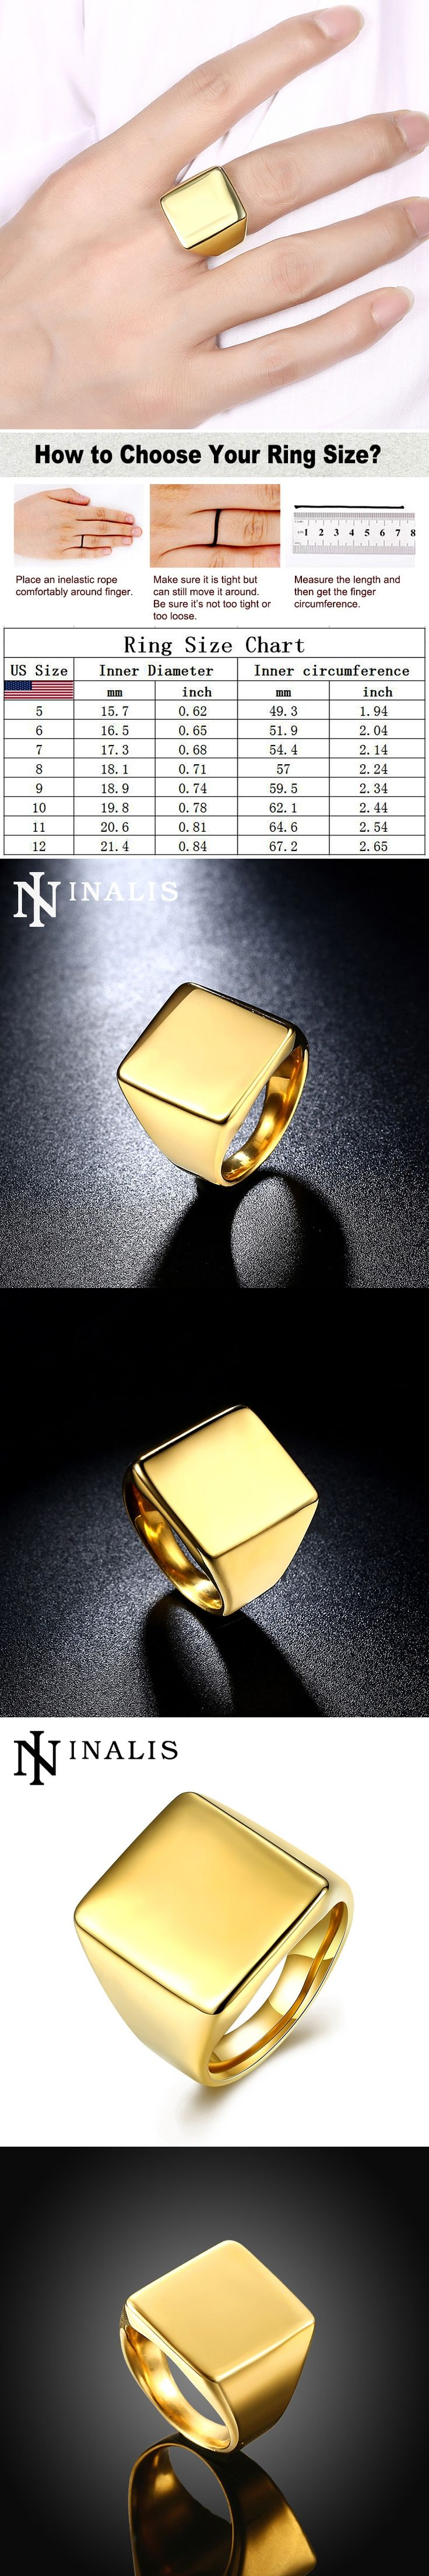 INALIS Minimalist Fashion Men's Signet Rings Luxury Gold Color Titanium Steel Finger Jewelry Big Square Shape Mid Rings for Men